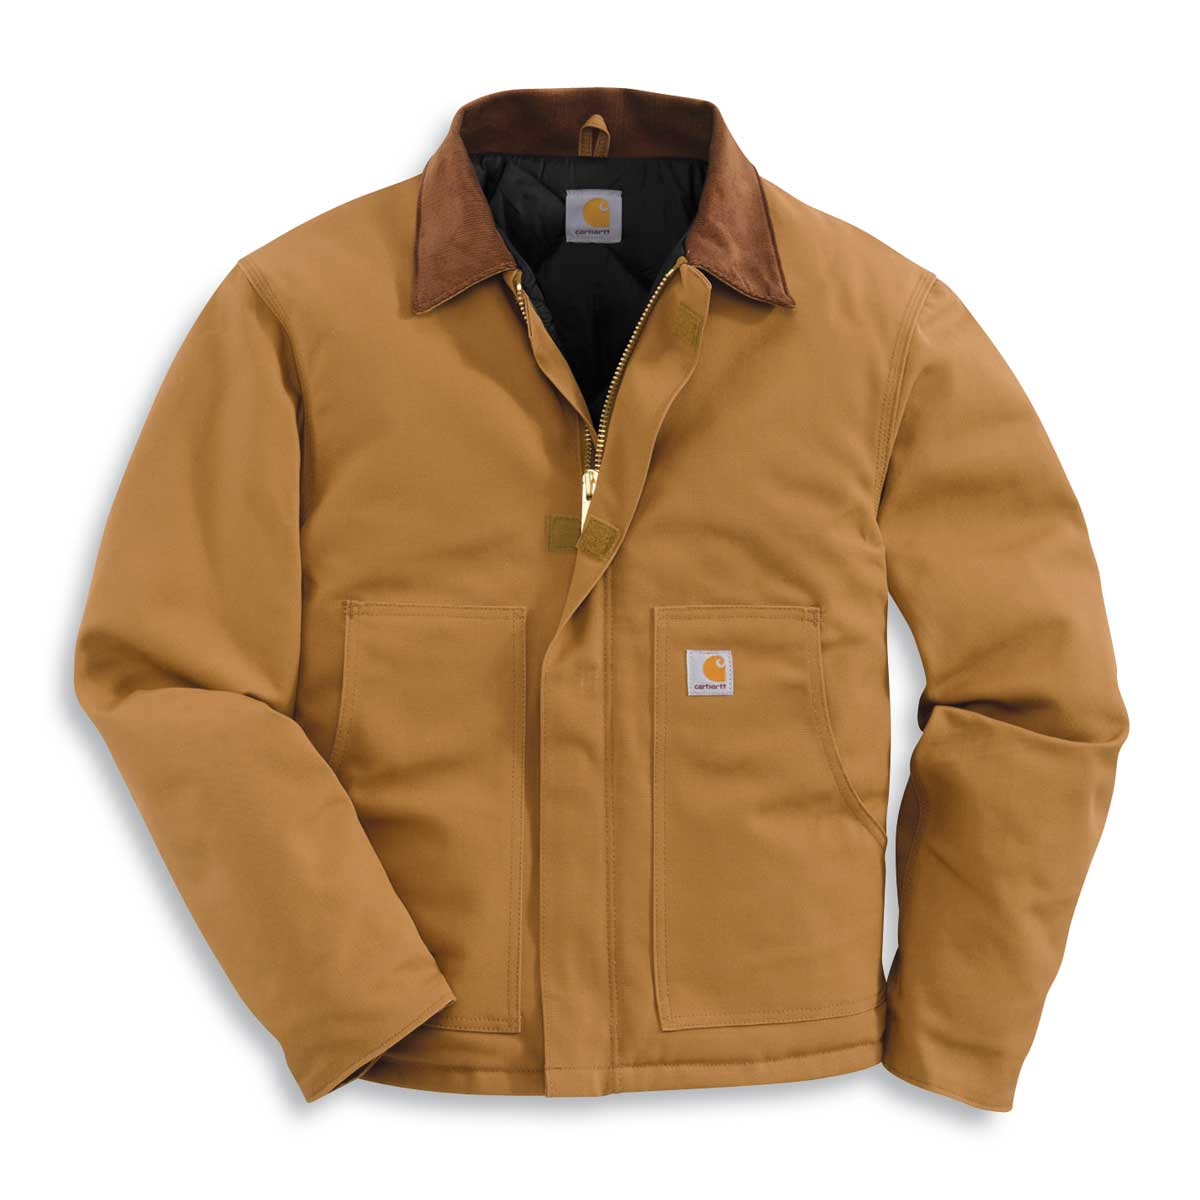 Carhartt J002 Arctic-lined Short Coat